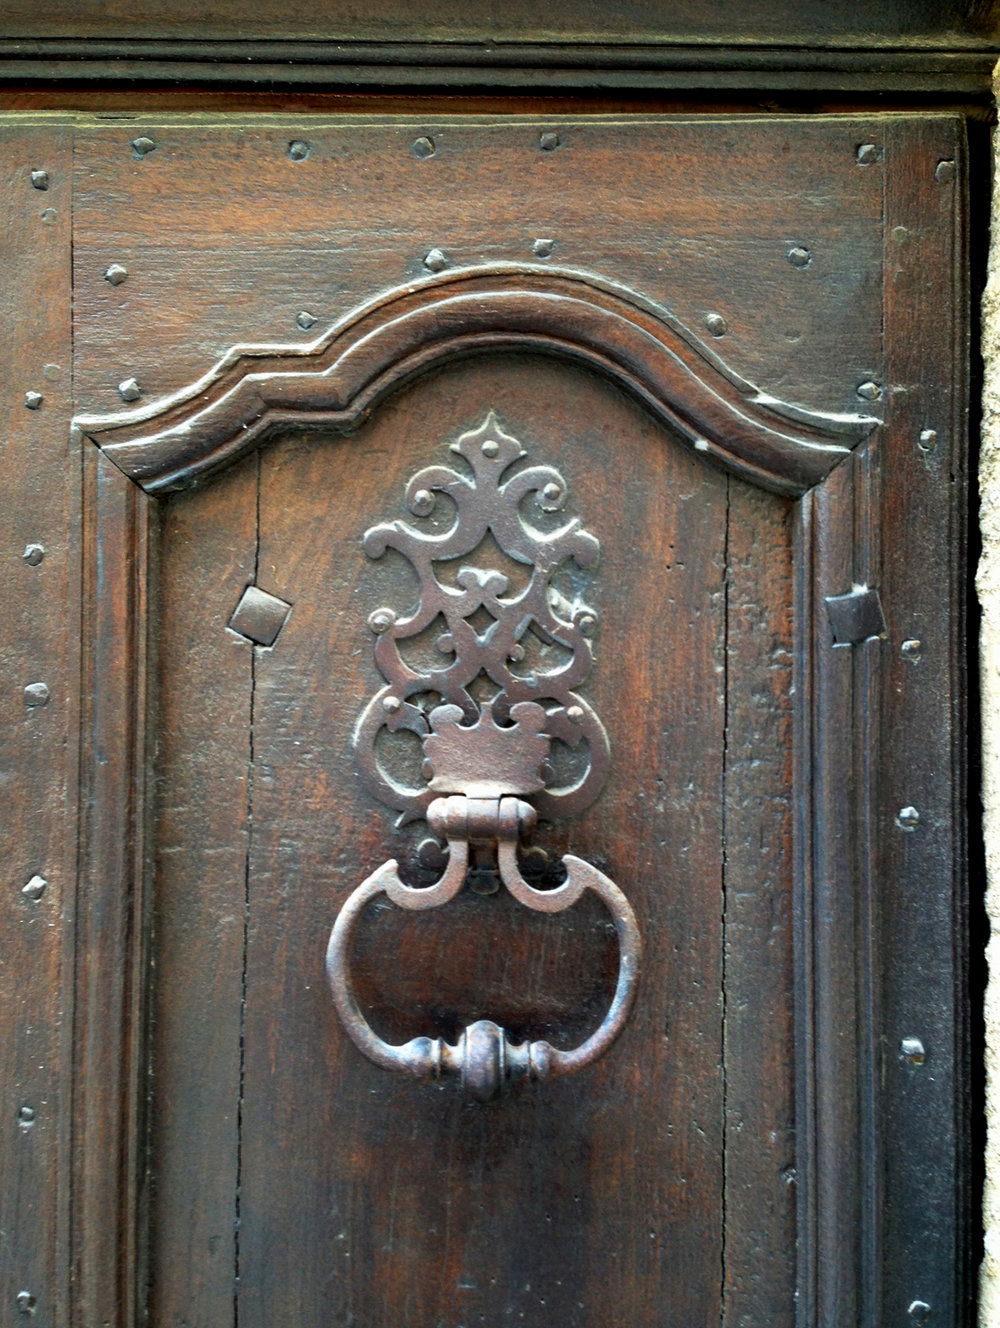 The buckle style door knocker became very popular in the 18th century